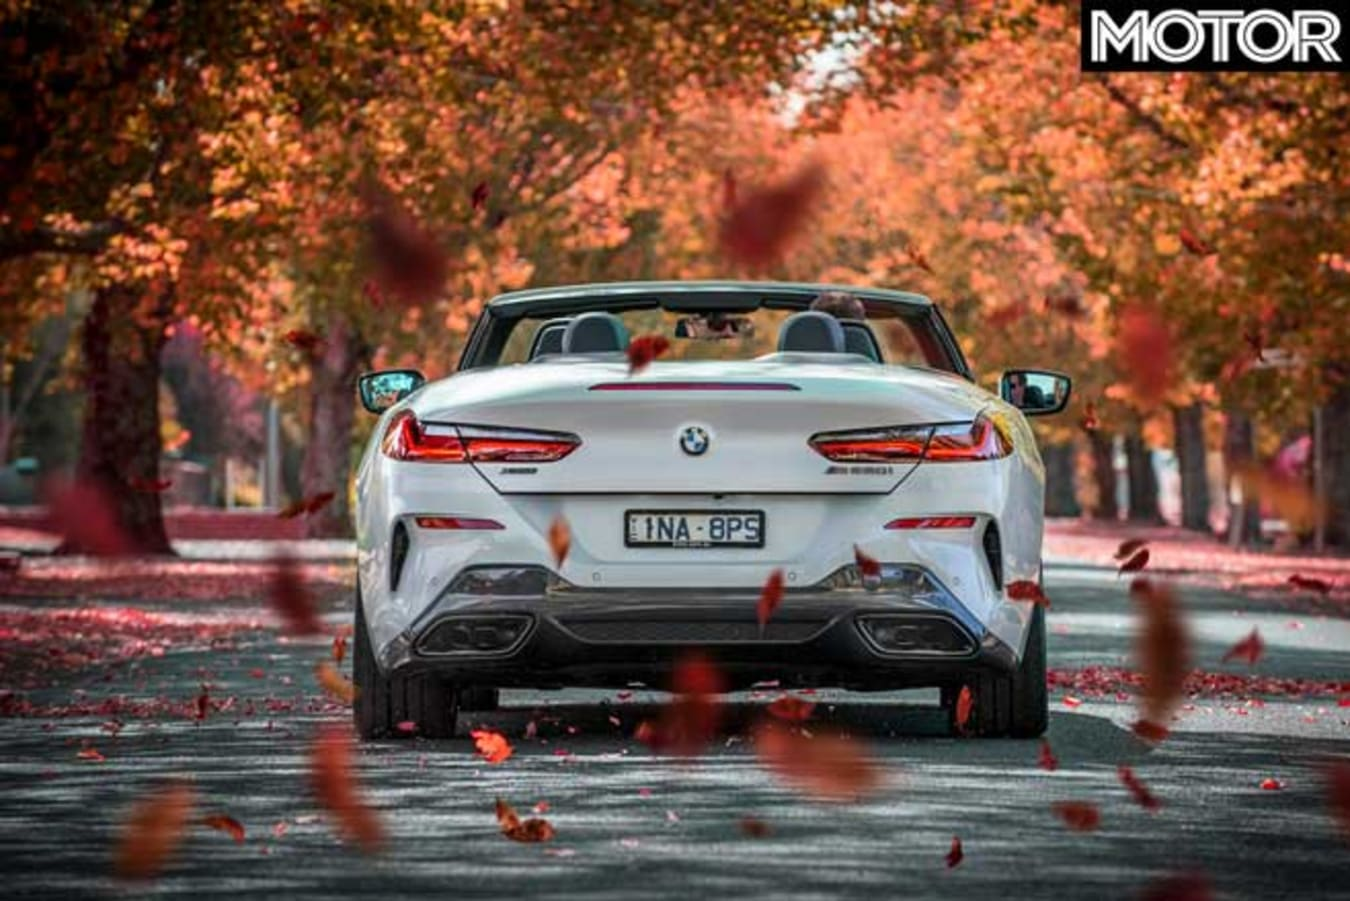 2019 BMW M850i Convertible acceleration